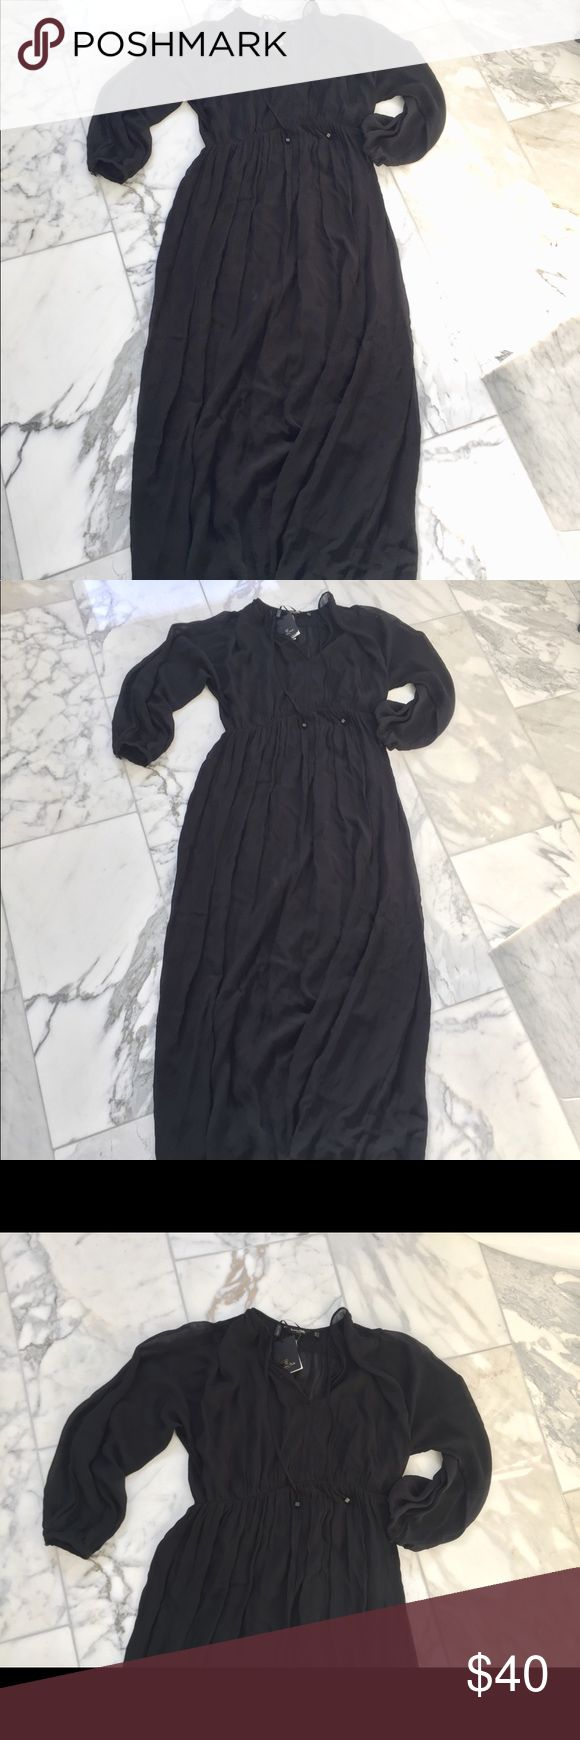 "Massimo Dutti maxi dress Sz S NWT Massimo Dutti Black Maxi Dress -New with Tag  Size:S  Detail:  Long dress with waist seam, made from a flowing fabric. Rounded V-neck and decorative tie-up detail, slightly puffed long sleeves with buttoned cuffs, stretch waist and lining.  Dry clean  Imported  100% viscose.  lining:100% polyester.   Measurements:   Armpit to Armpit:17"", Waist:28"", length:54"".   All the items are guaranteed 100% Authentic Massimo Dutti Dresses Maxi"